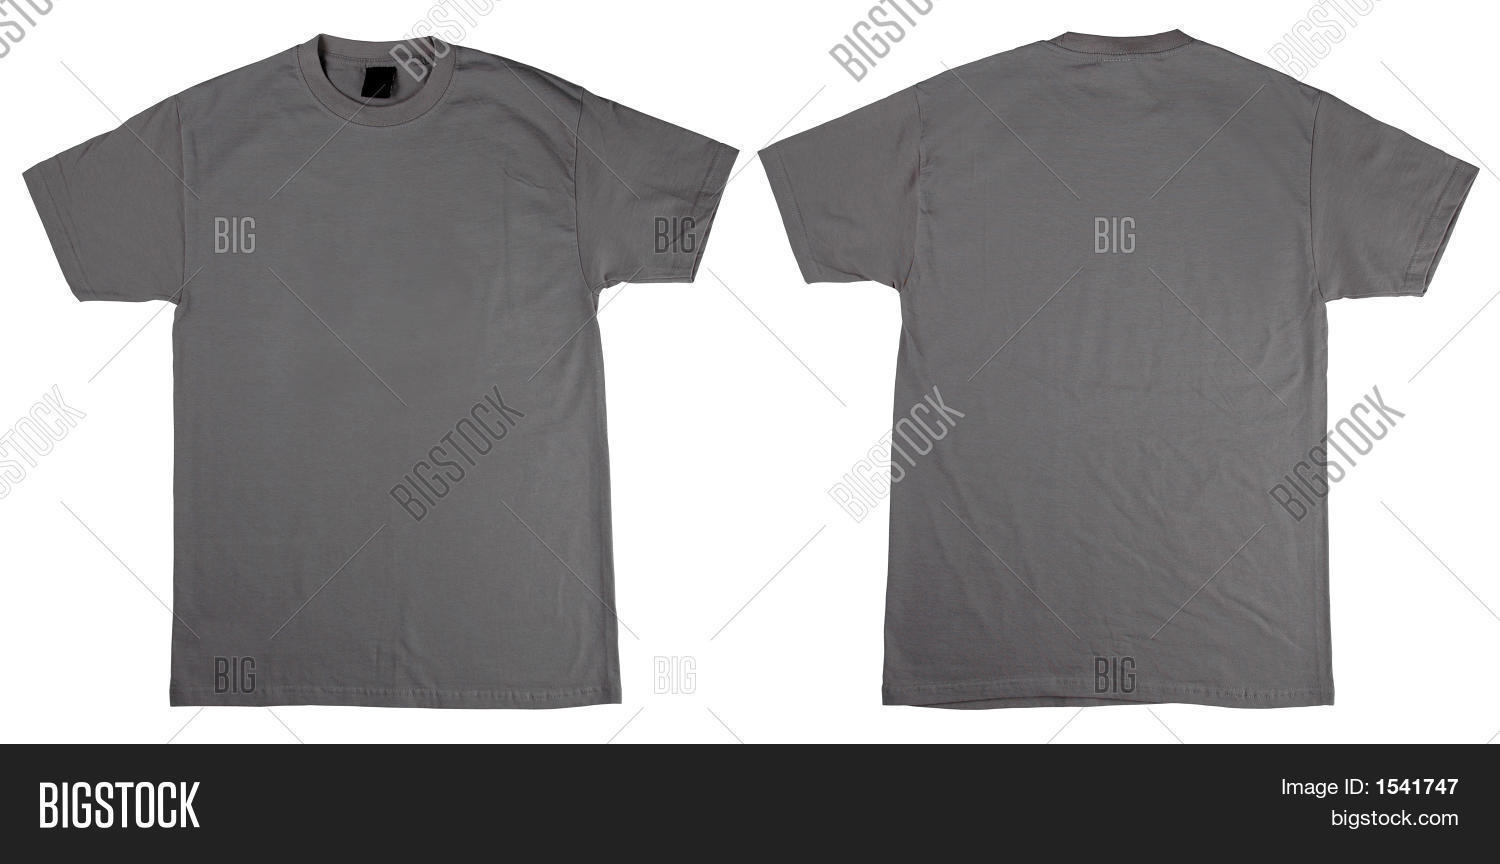 T shirt front back image photo free trial bigstock t shirt front and back maxwellsz